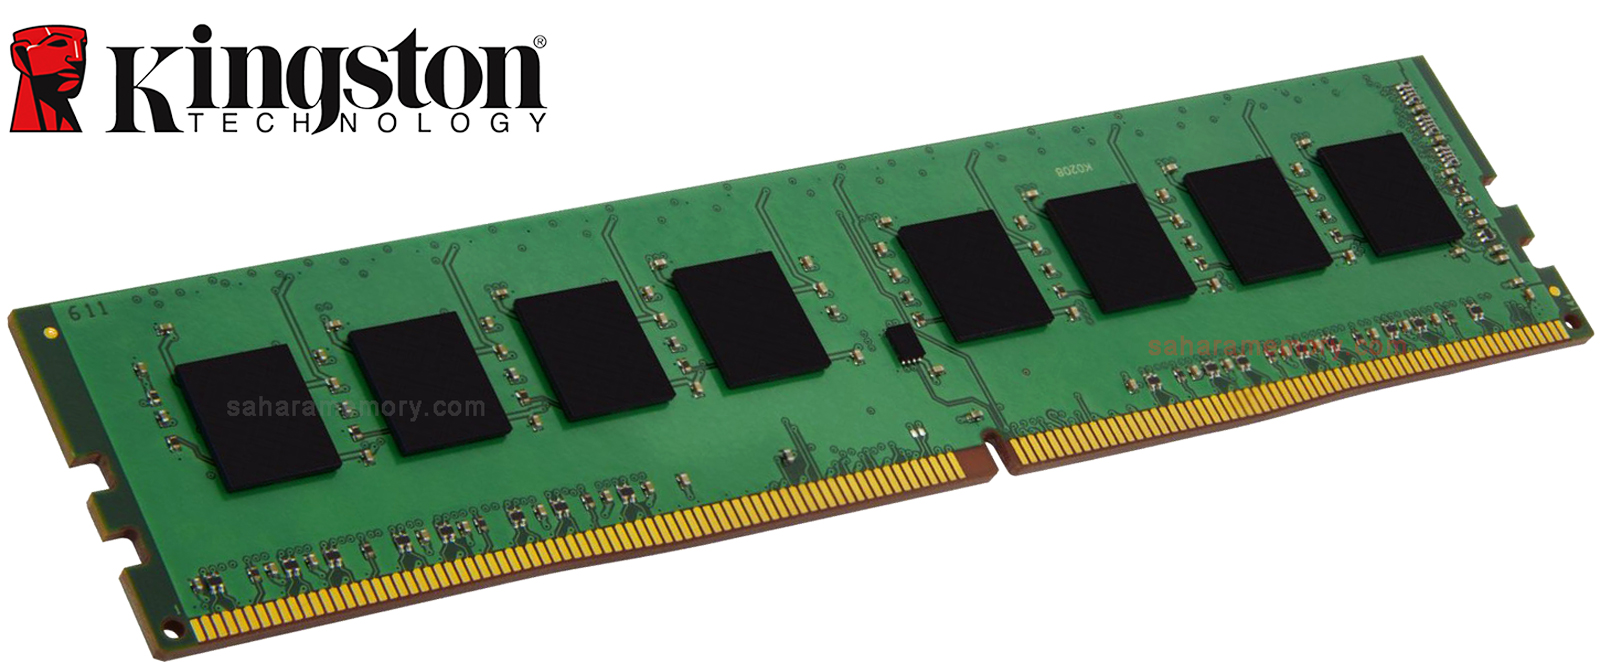 kingston ddr4 8gb 2400 kvr24n17s8 8 8g dram desktop memeory longdimm module 1 2v cl17 dram. Black Bedroom Furniture Sets. Home Design Ideas